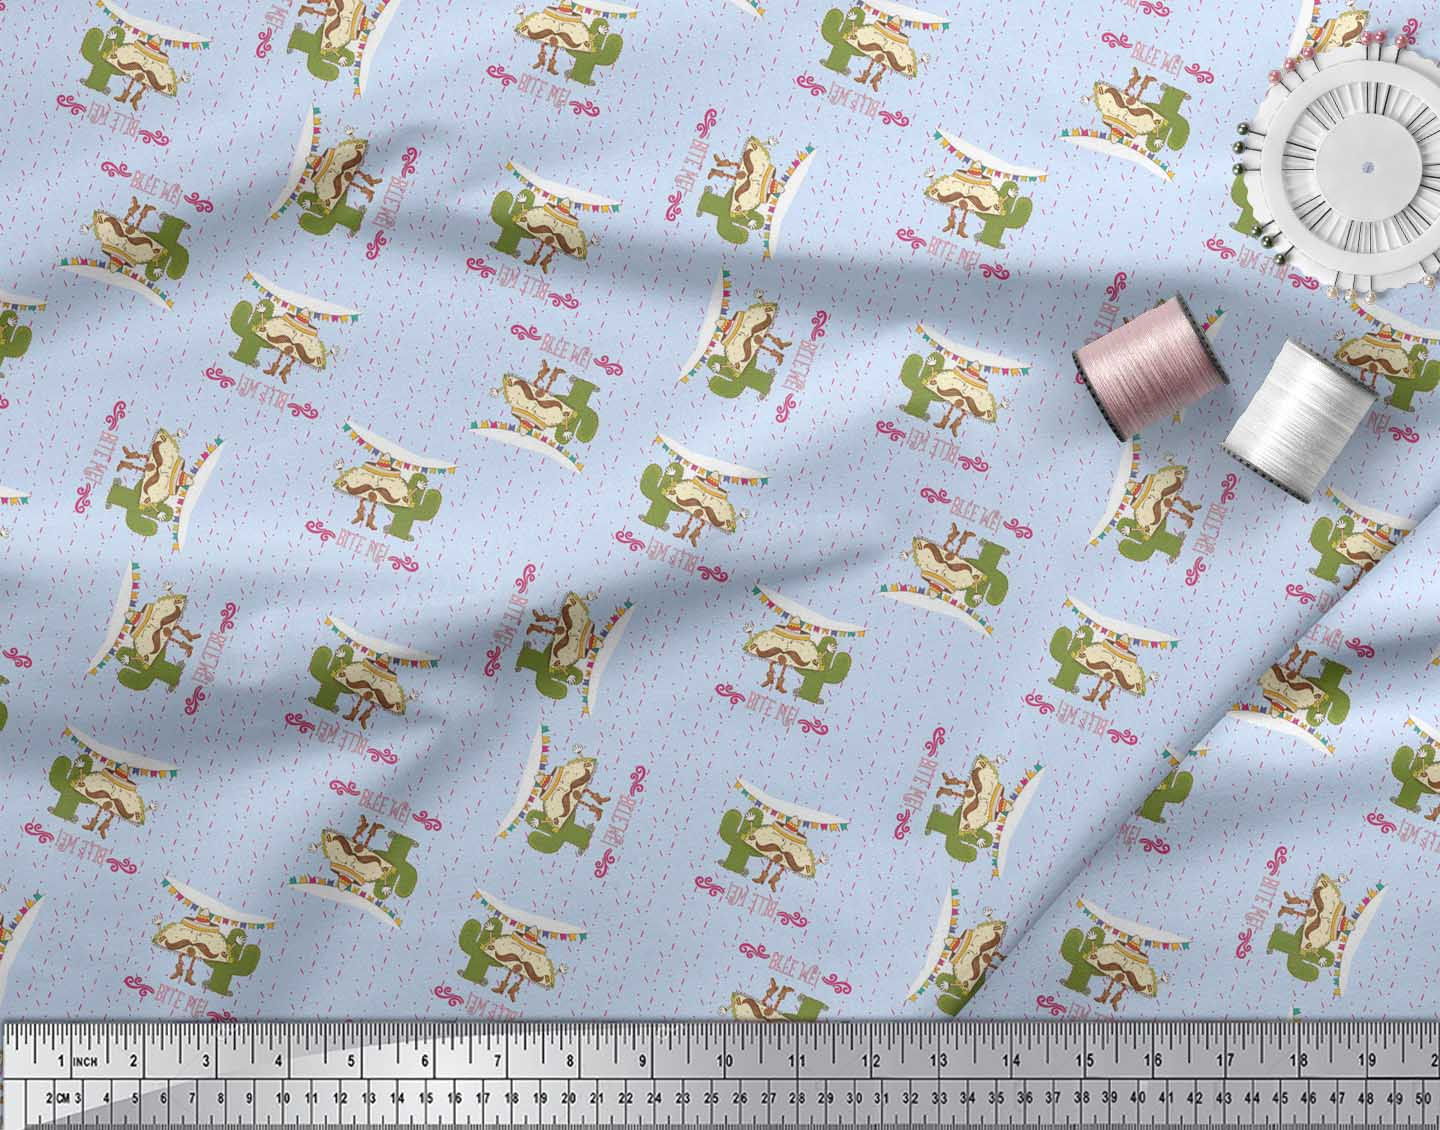 Soimoi-Blue-Cotton-Poplin-Fabric-Text-amp-Tacos-Food-Print-Fabric-OEP thumbnail 4